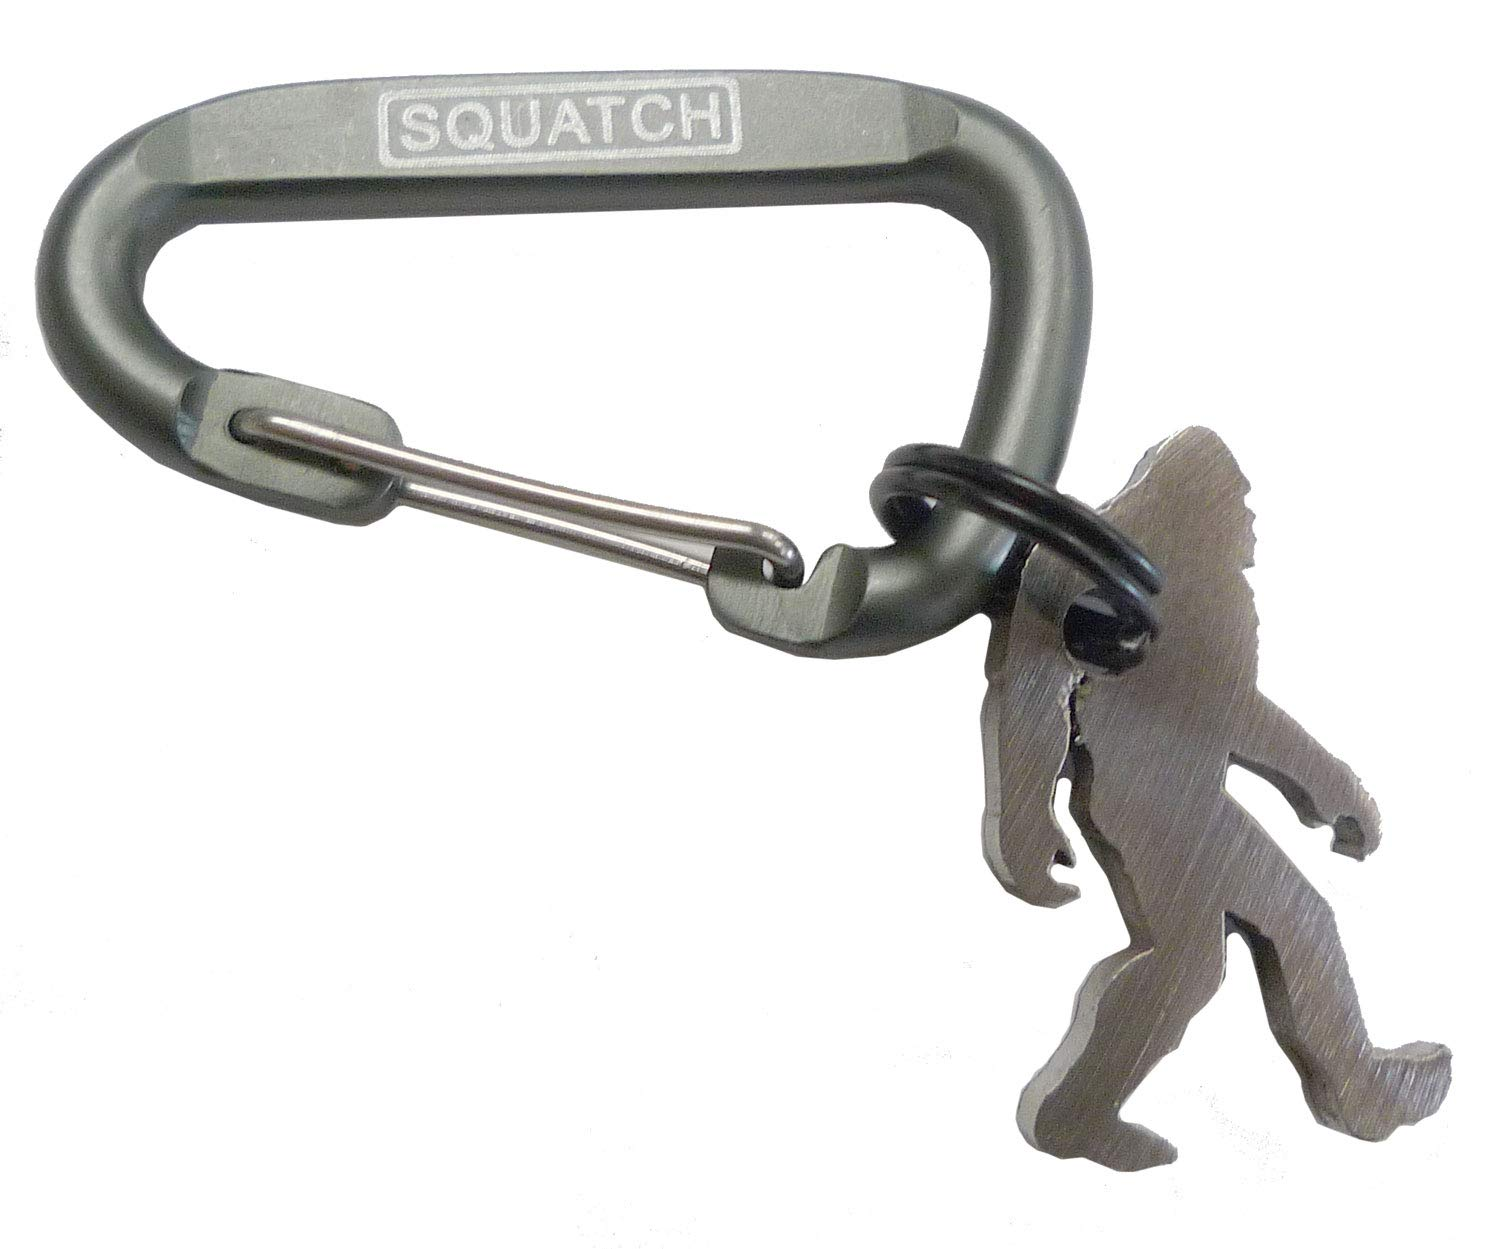 Squatch Metalworks Microsquatch Keychain Charm Bottle Opener with Carabiner - Made in USA